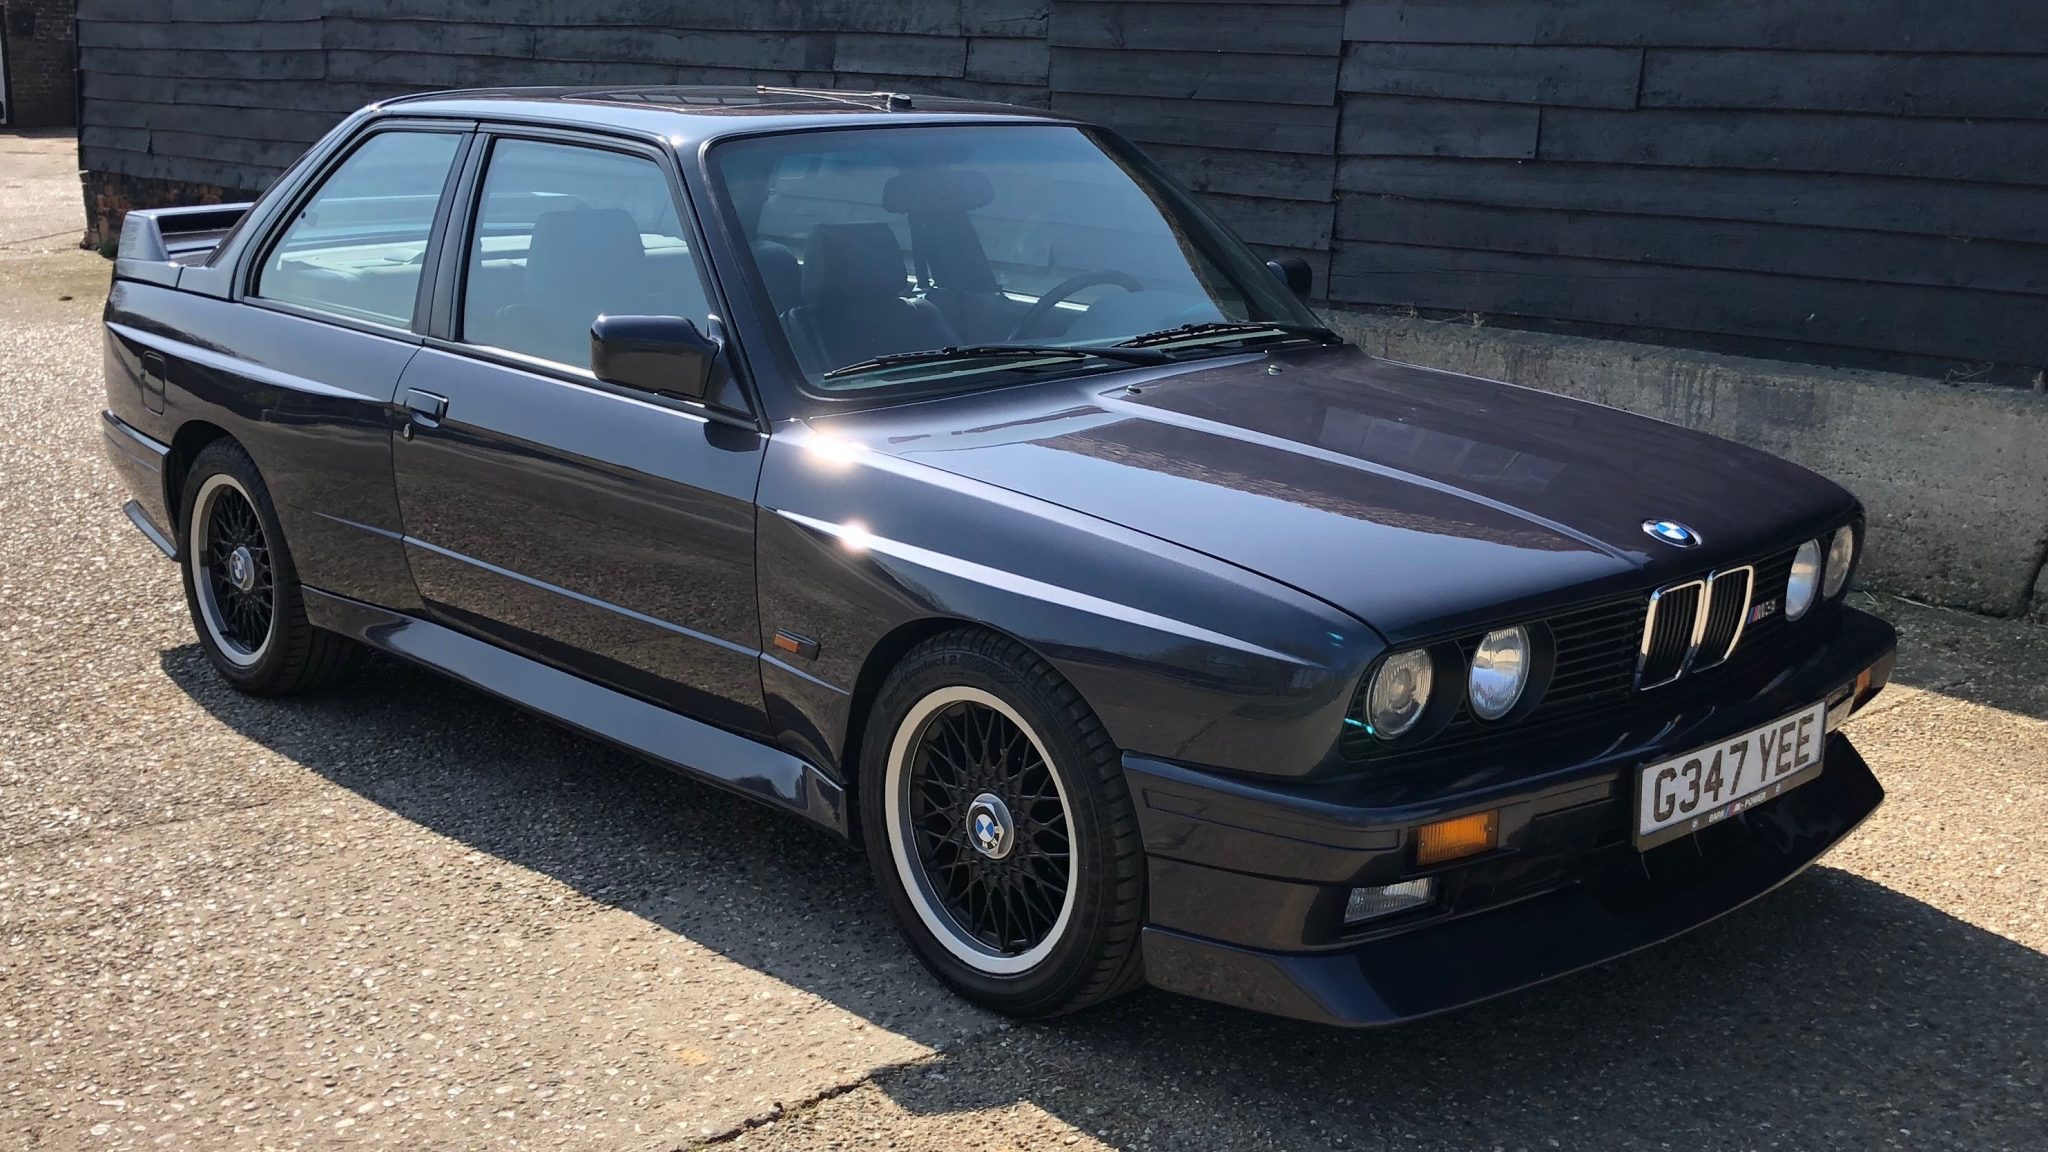 Bmw M3 Johnny Cecotto Edition Classic Car Company For Sale